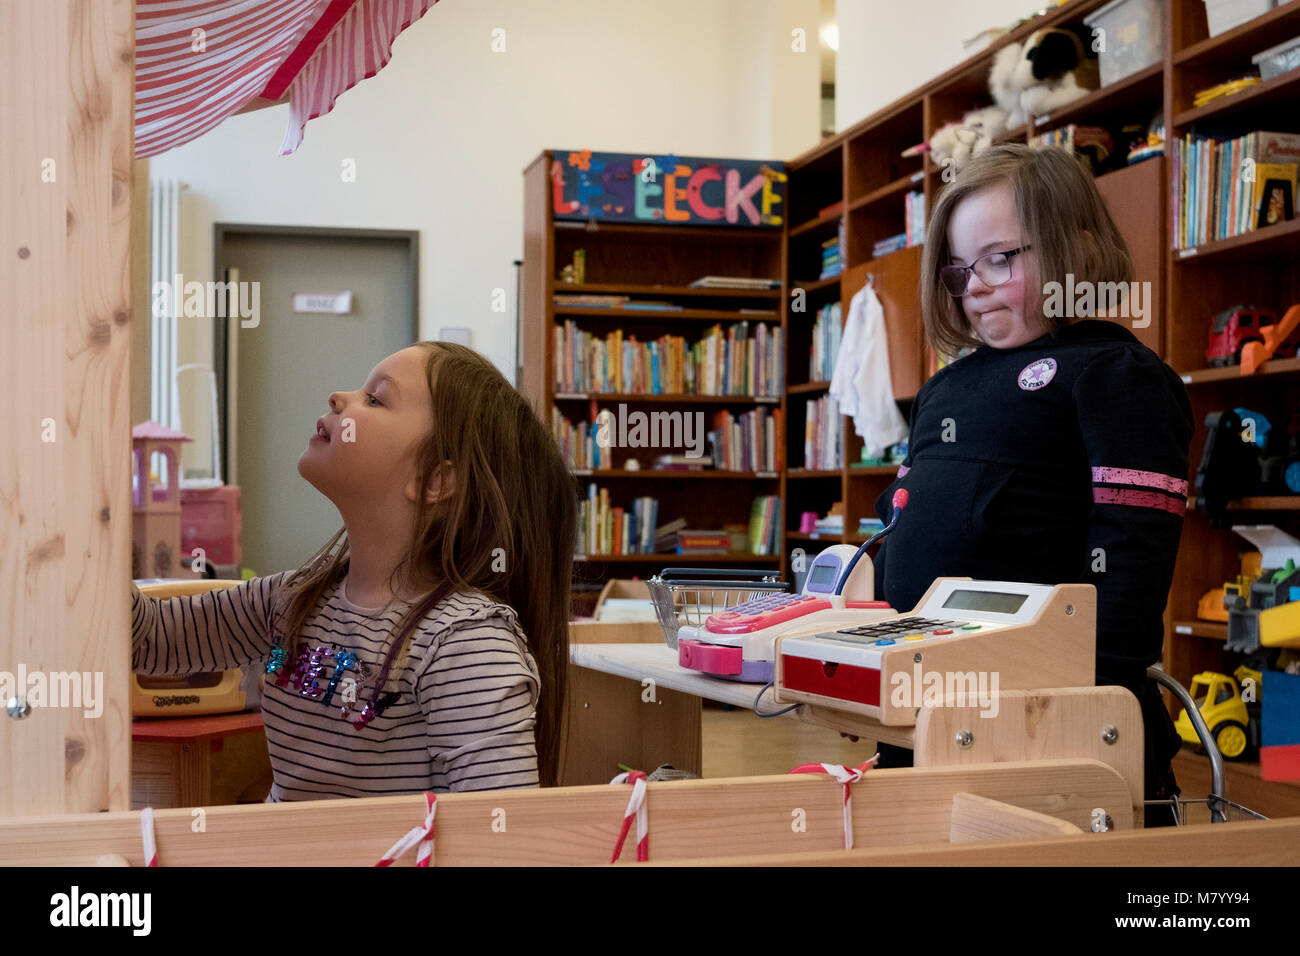 08 February 2018, Germany, Oranienburg: Nora (R), a child with Down's syndrome, and her sister Lucy play with - Stock Image